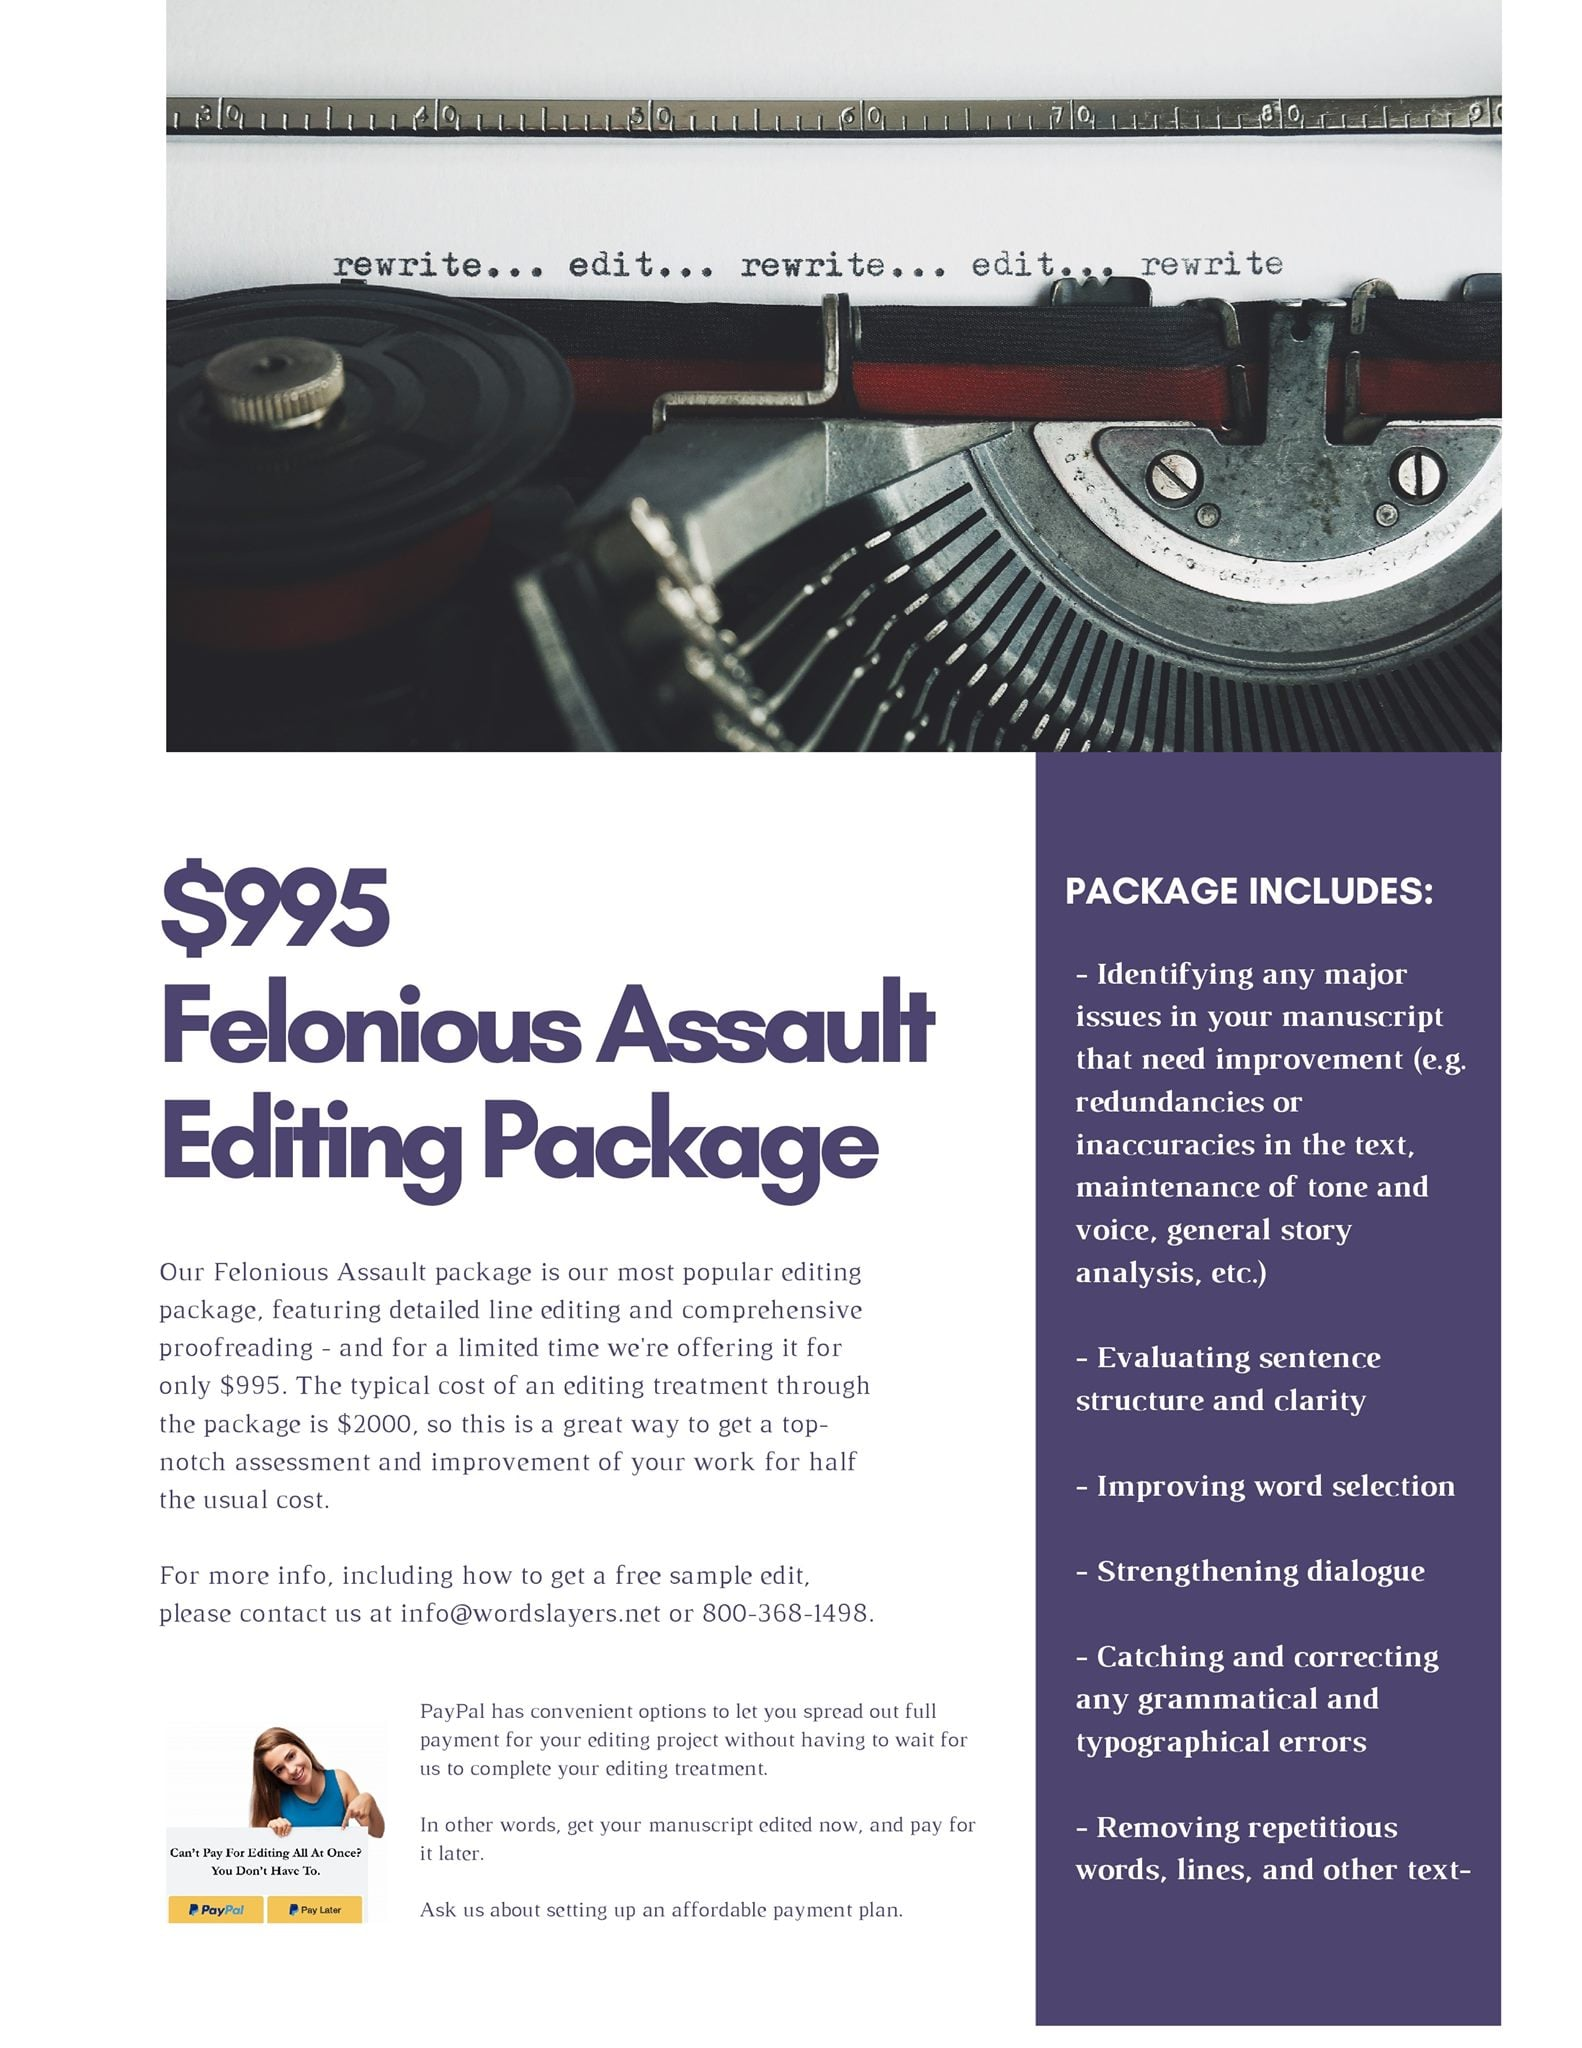 Felonious Assault Editing Package #MotownWriters Special via @thewordslayer